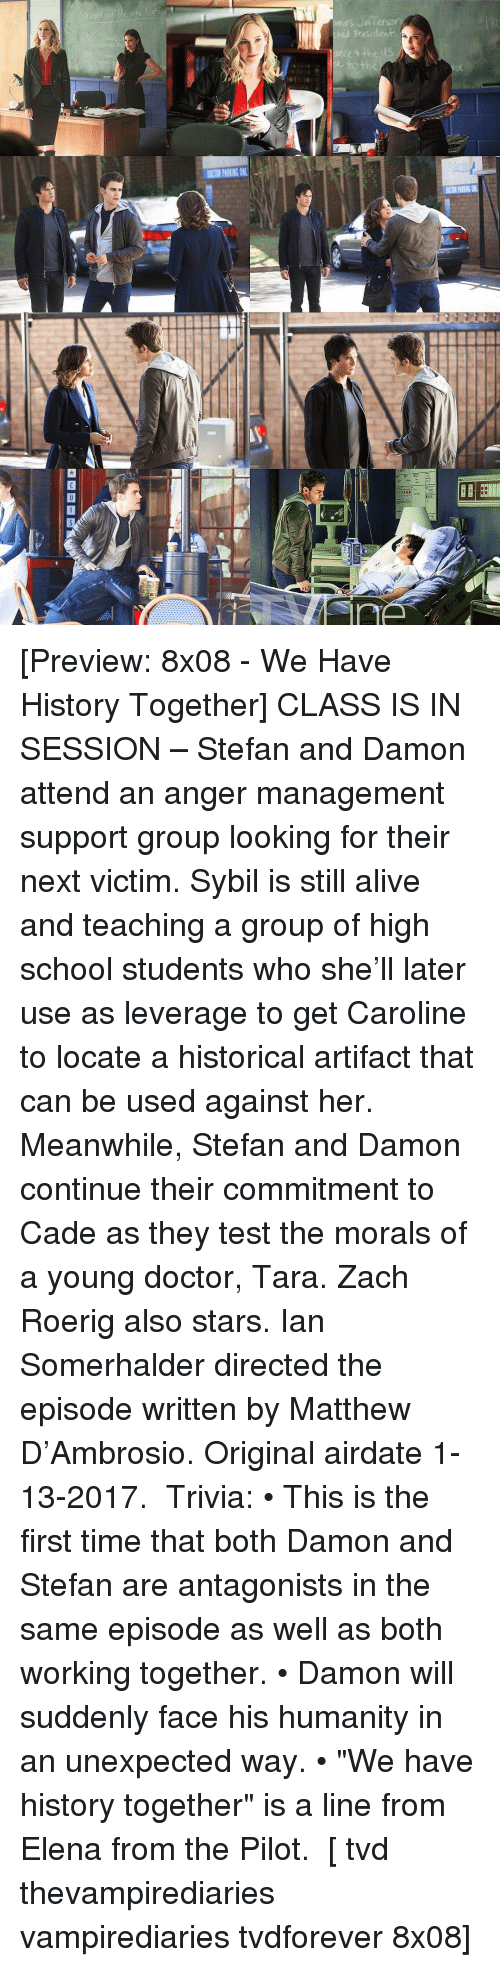 "Anger Management: ーーーラRE illm  DOORPASEN [Preview: 8x08 - We Have History Together] CLASS IS IN SESSION – Stefan and Damon attend an anger management support group looking for their next victim. Sybil is still alive and teaching a group of high school students who she'll later use as leverage to get Caroline to locate a historical artifact that can be used against her. Meanwhile, Stefan and Damon continue their commitment to Cade as they test the morals of a young doctor, Tara. Zach Roerig also stars. Ian Somerhalder directed the episode written by Matthew D'Ambrosio. Original airdate ‪1-13-2017‬. ⠀ Trivia: • This is the first time that both Damon and Stefan are antagonists in the same episode as well as both working together. • Damon will suddenly face his humanity in an unexpected way. • ""We have history together"" is a line from Elena from the Pilot. ⠀ [ tvd thevampirediaries vampirediaries tvdforever 8x08]"